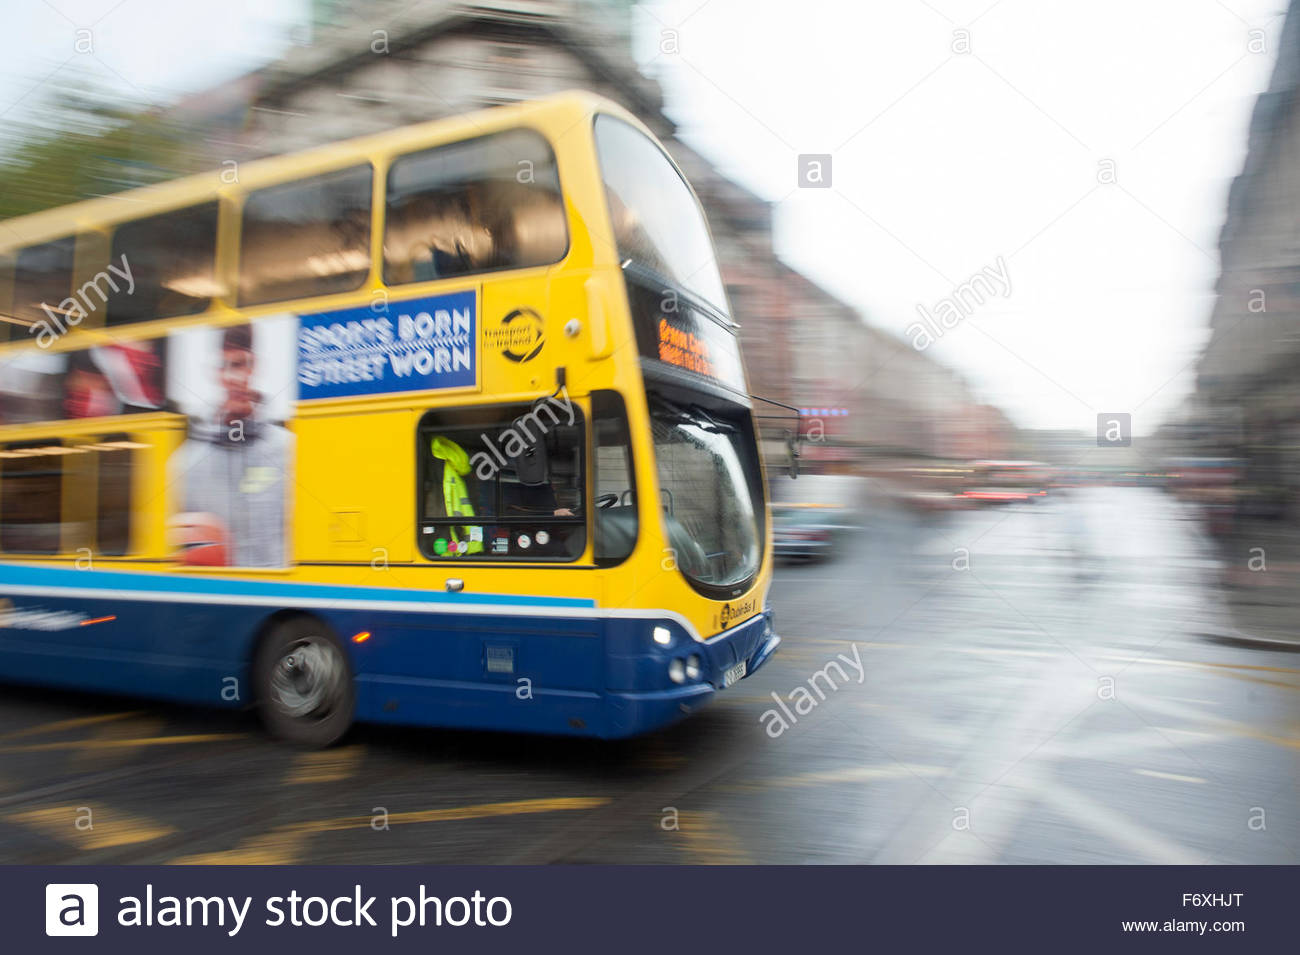 Dublin Ireland Double decker bus operated by Dublin Bus in motion. - Stock Image